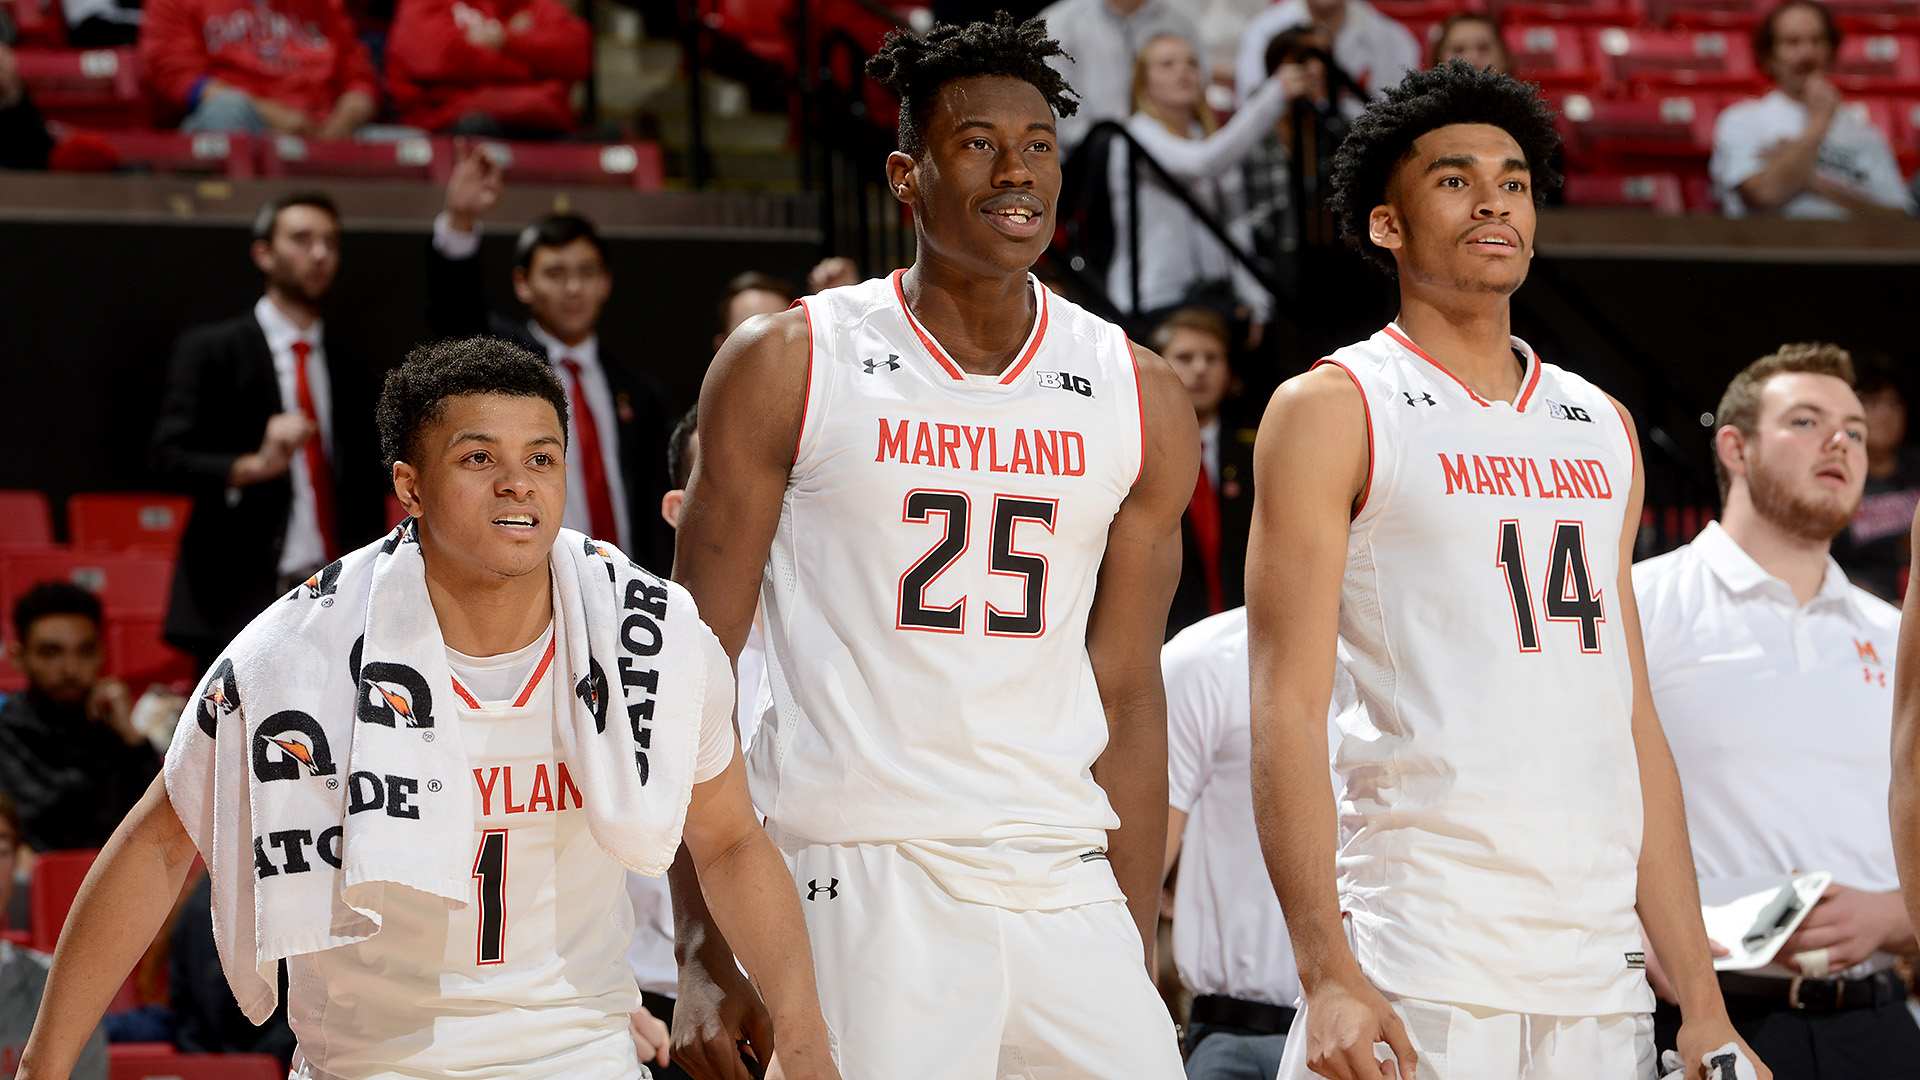 men's basketball - university of maryland athletics